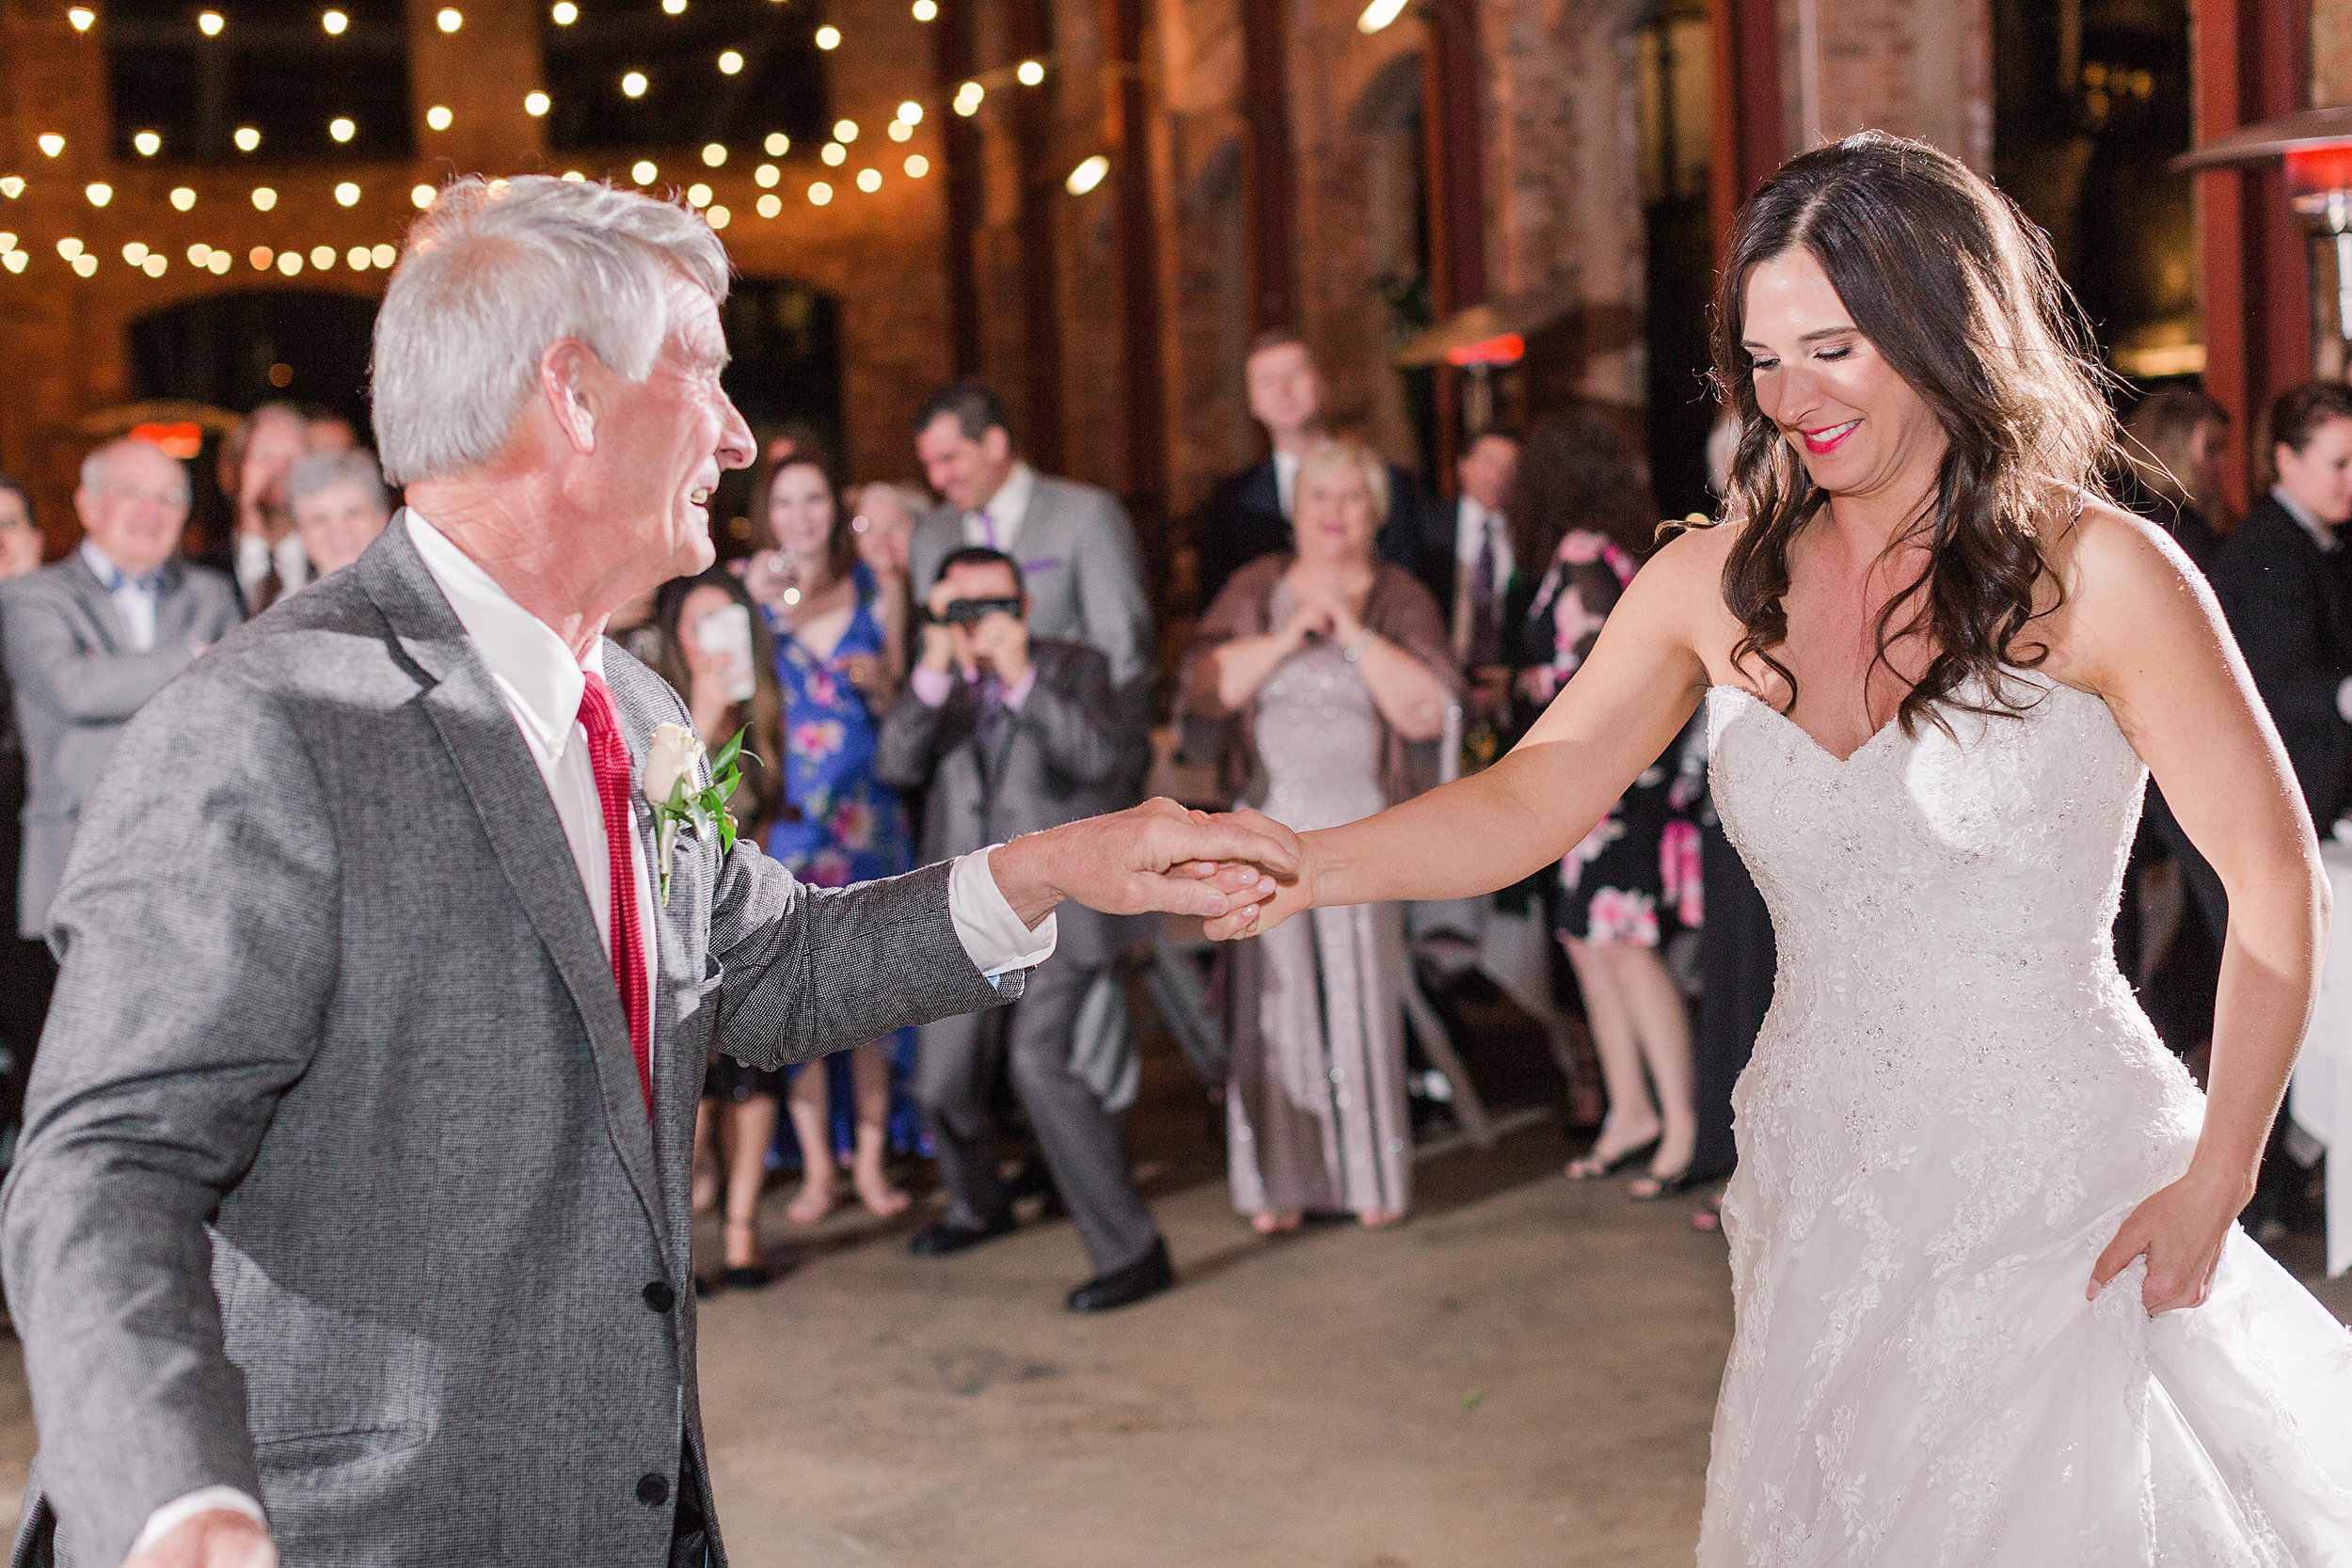 Wedding-DJ-Greenville-SC-Larkins-Wyche-Pavilion-216.jpg